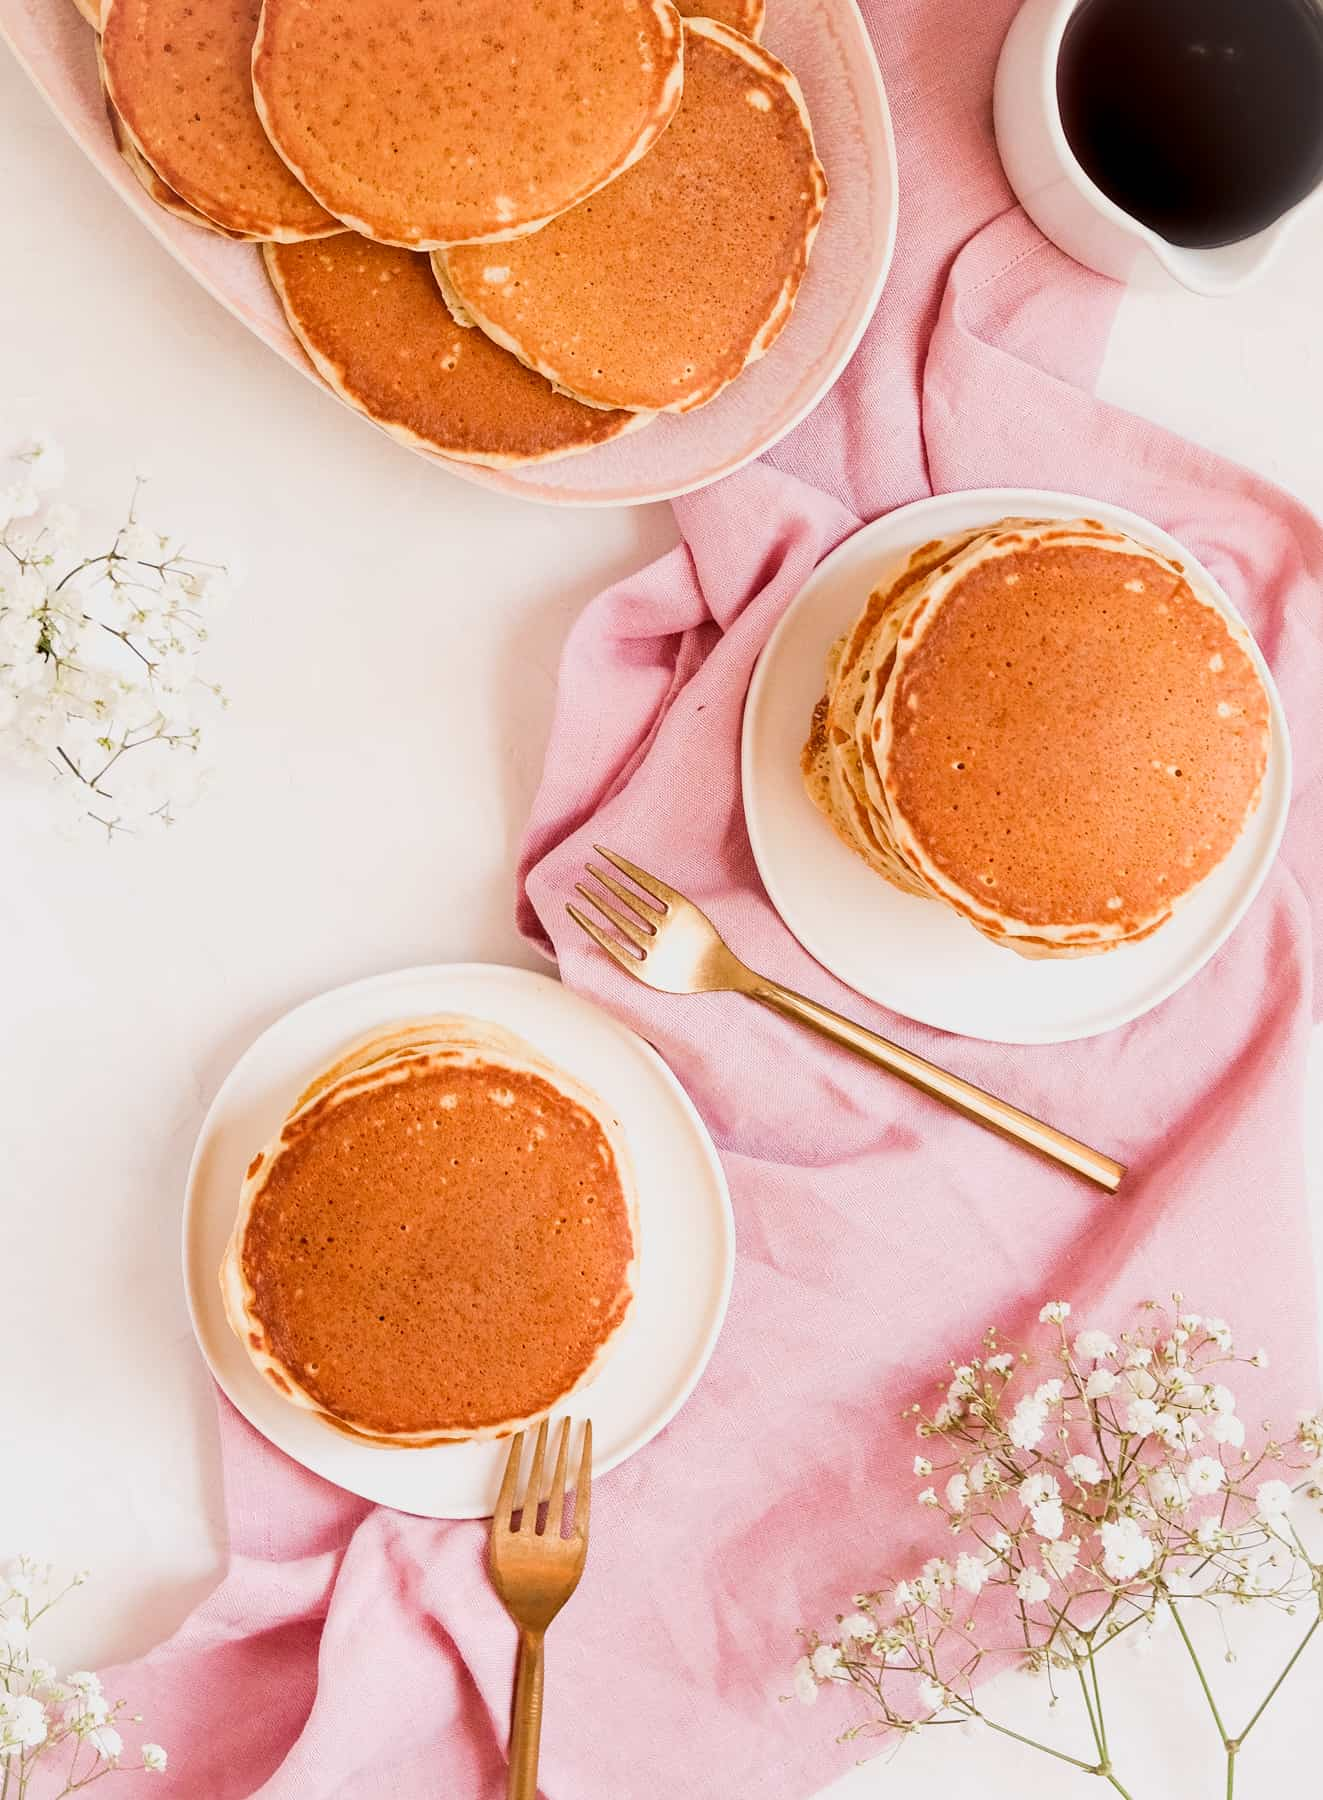 two stacks of buttermilk pancakes on a white plate with a fork